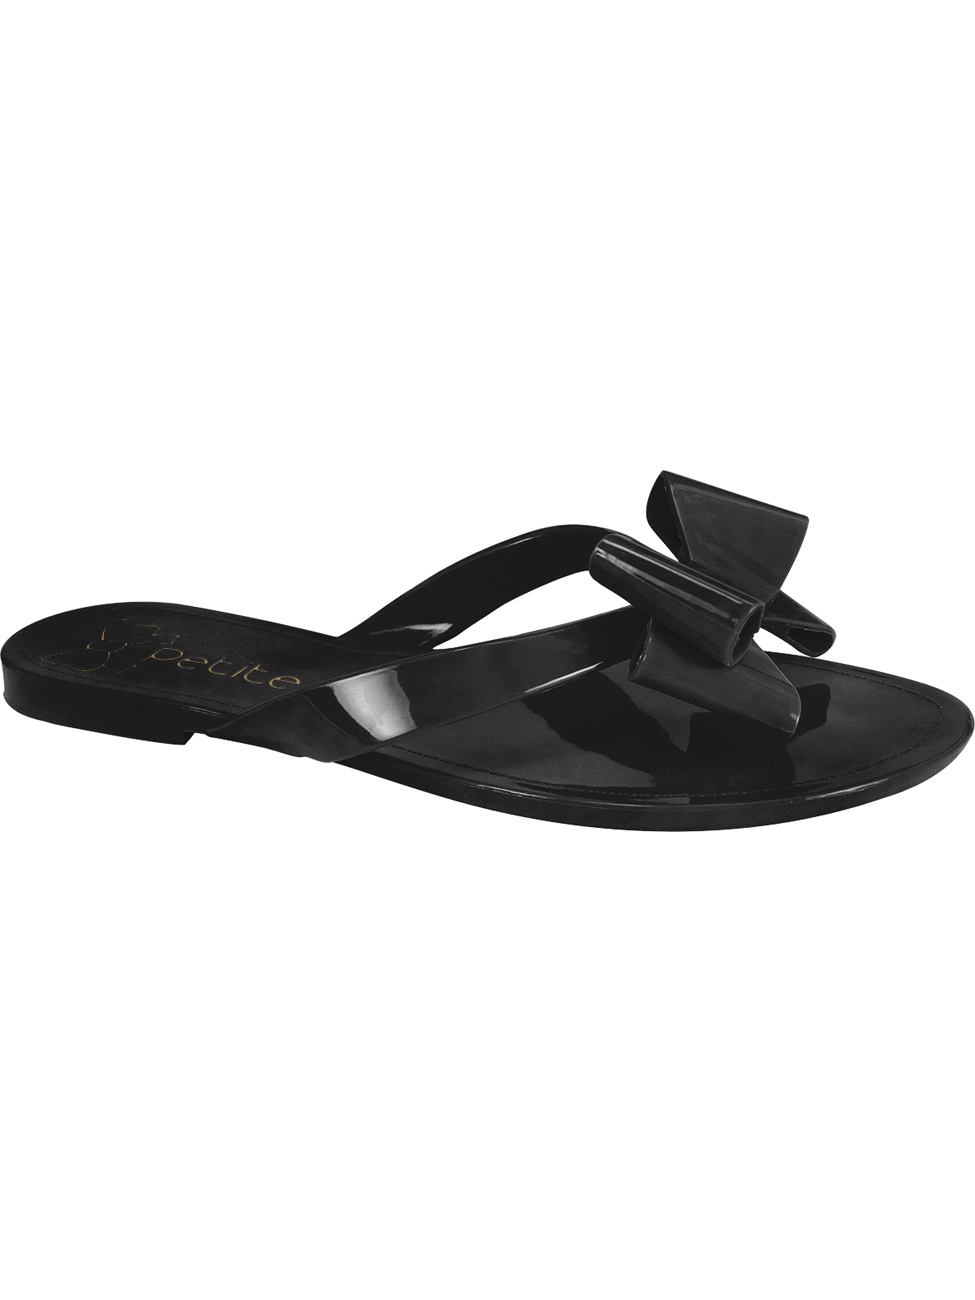 Black flip-flop with bow